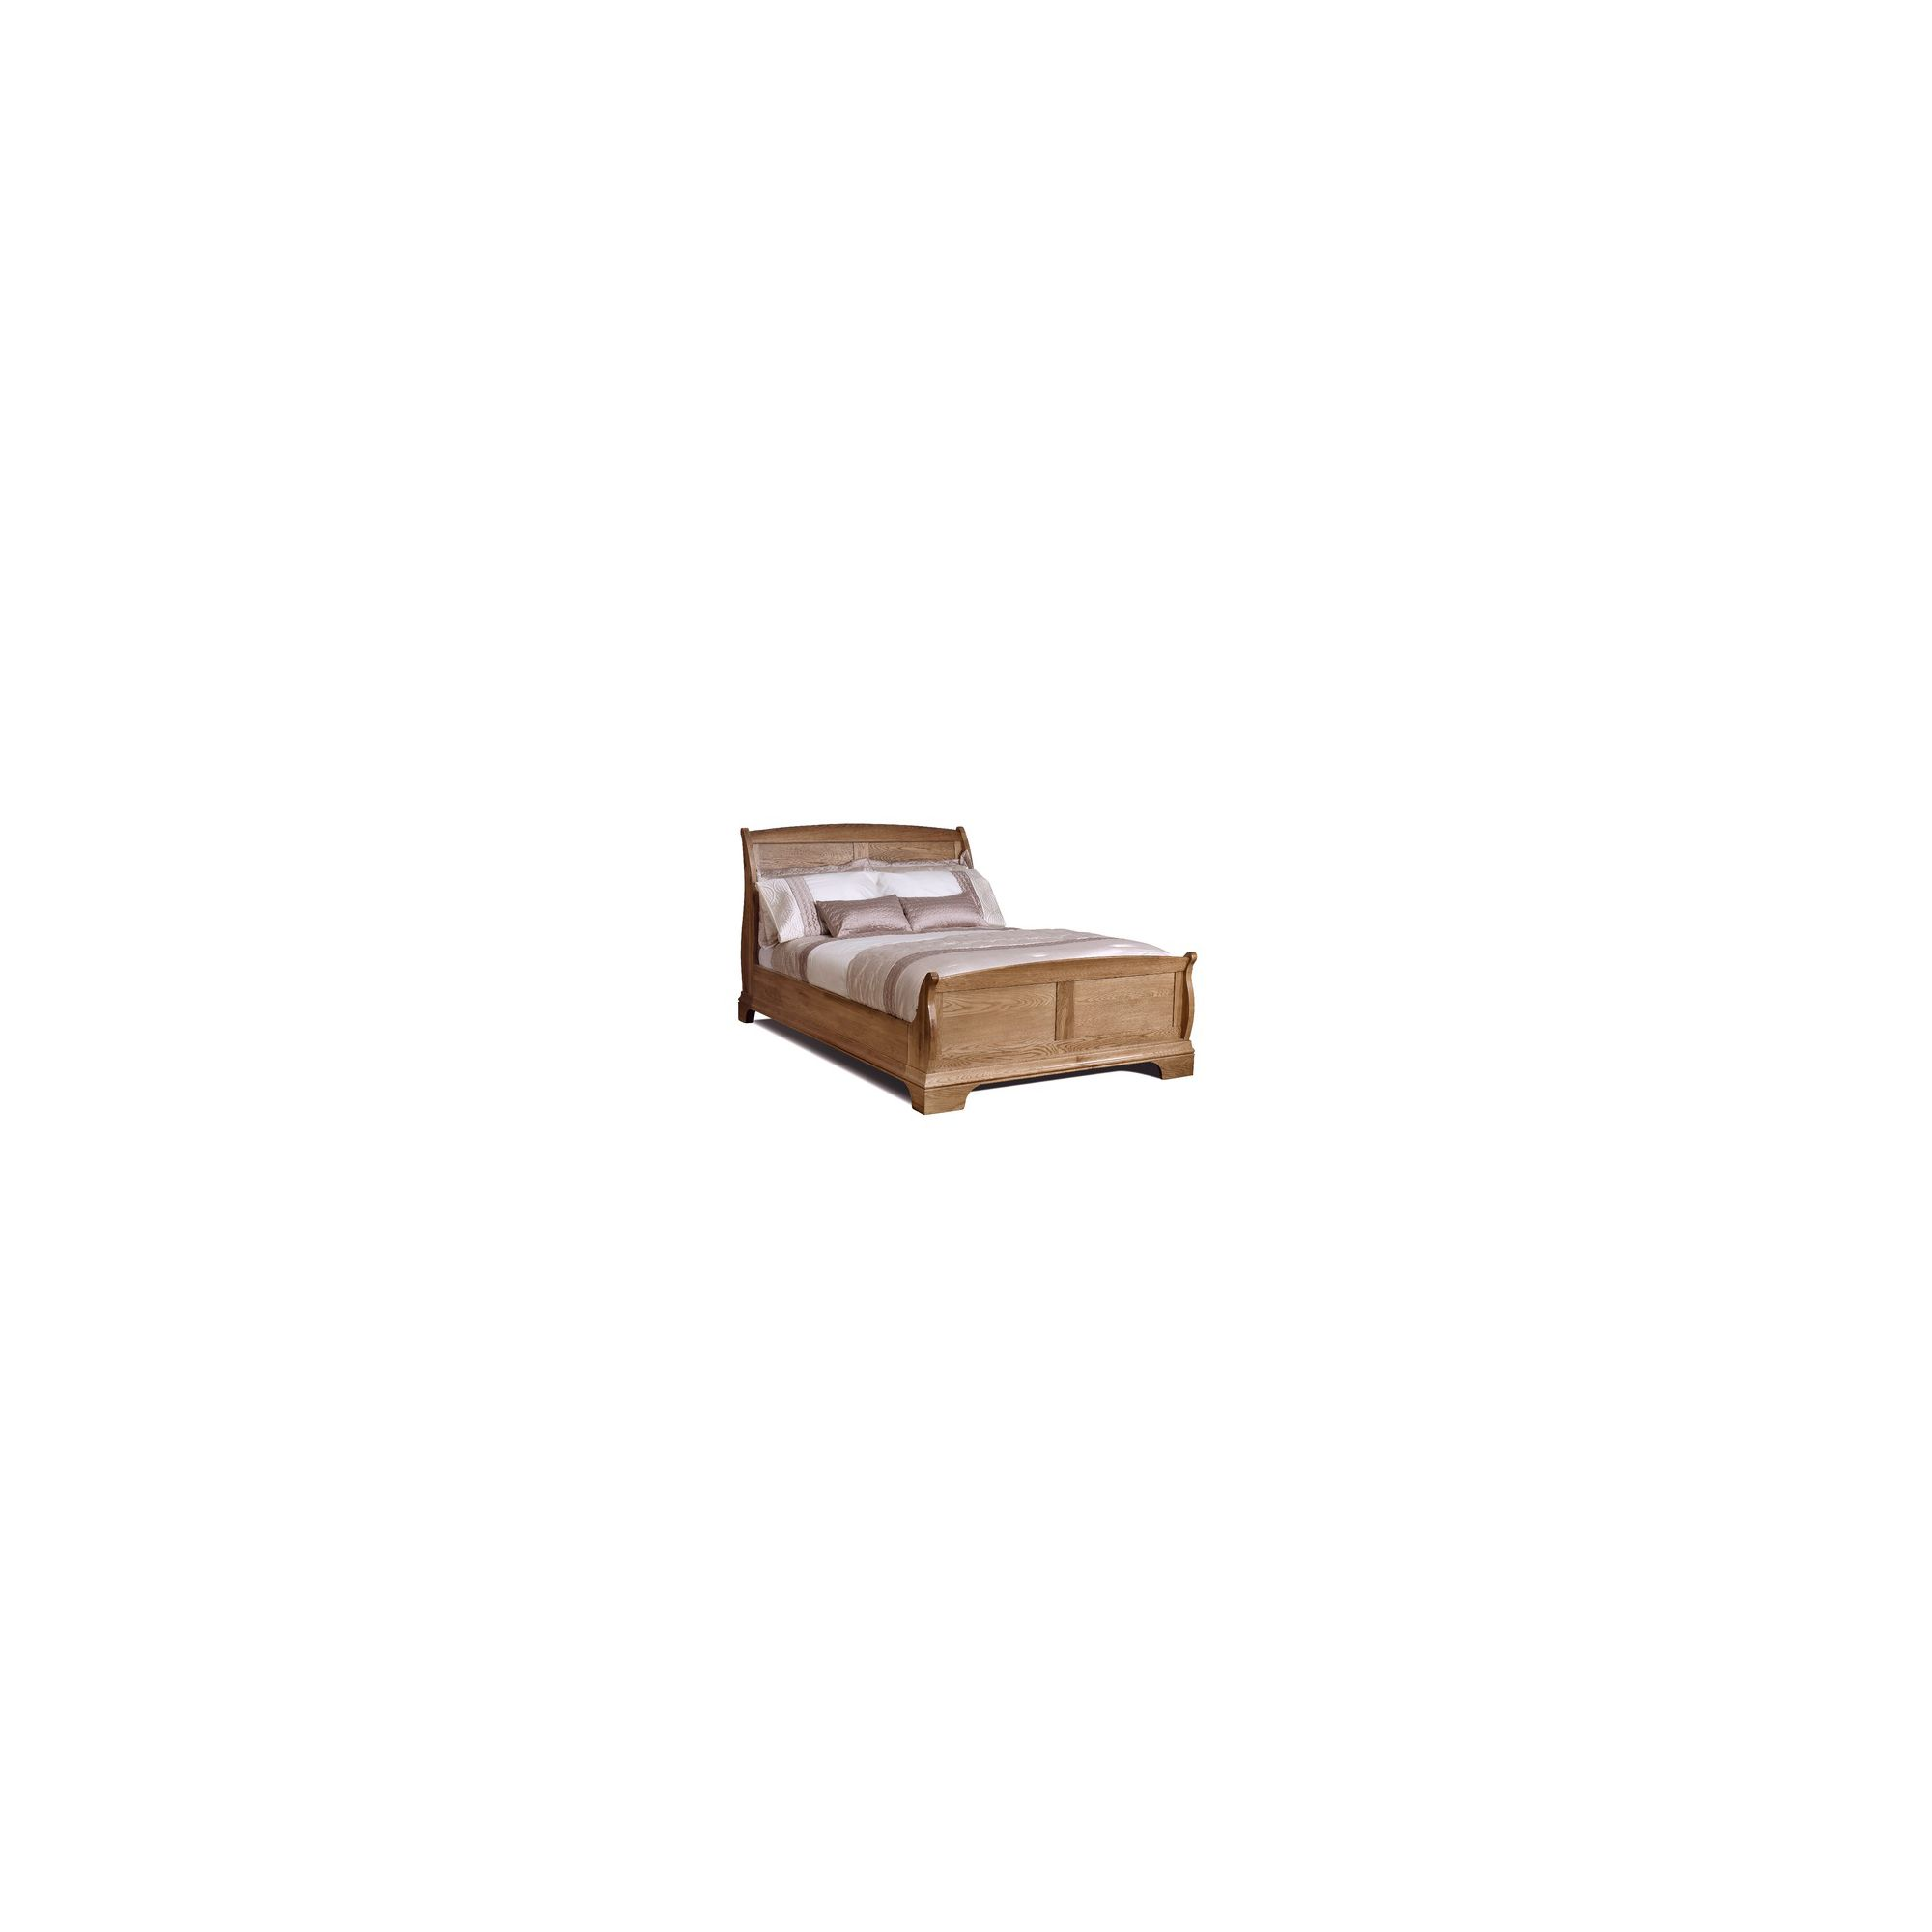 SWS Elgin Bed at Tesco Direct